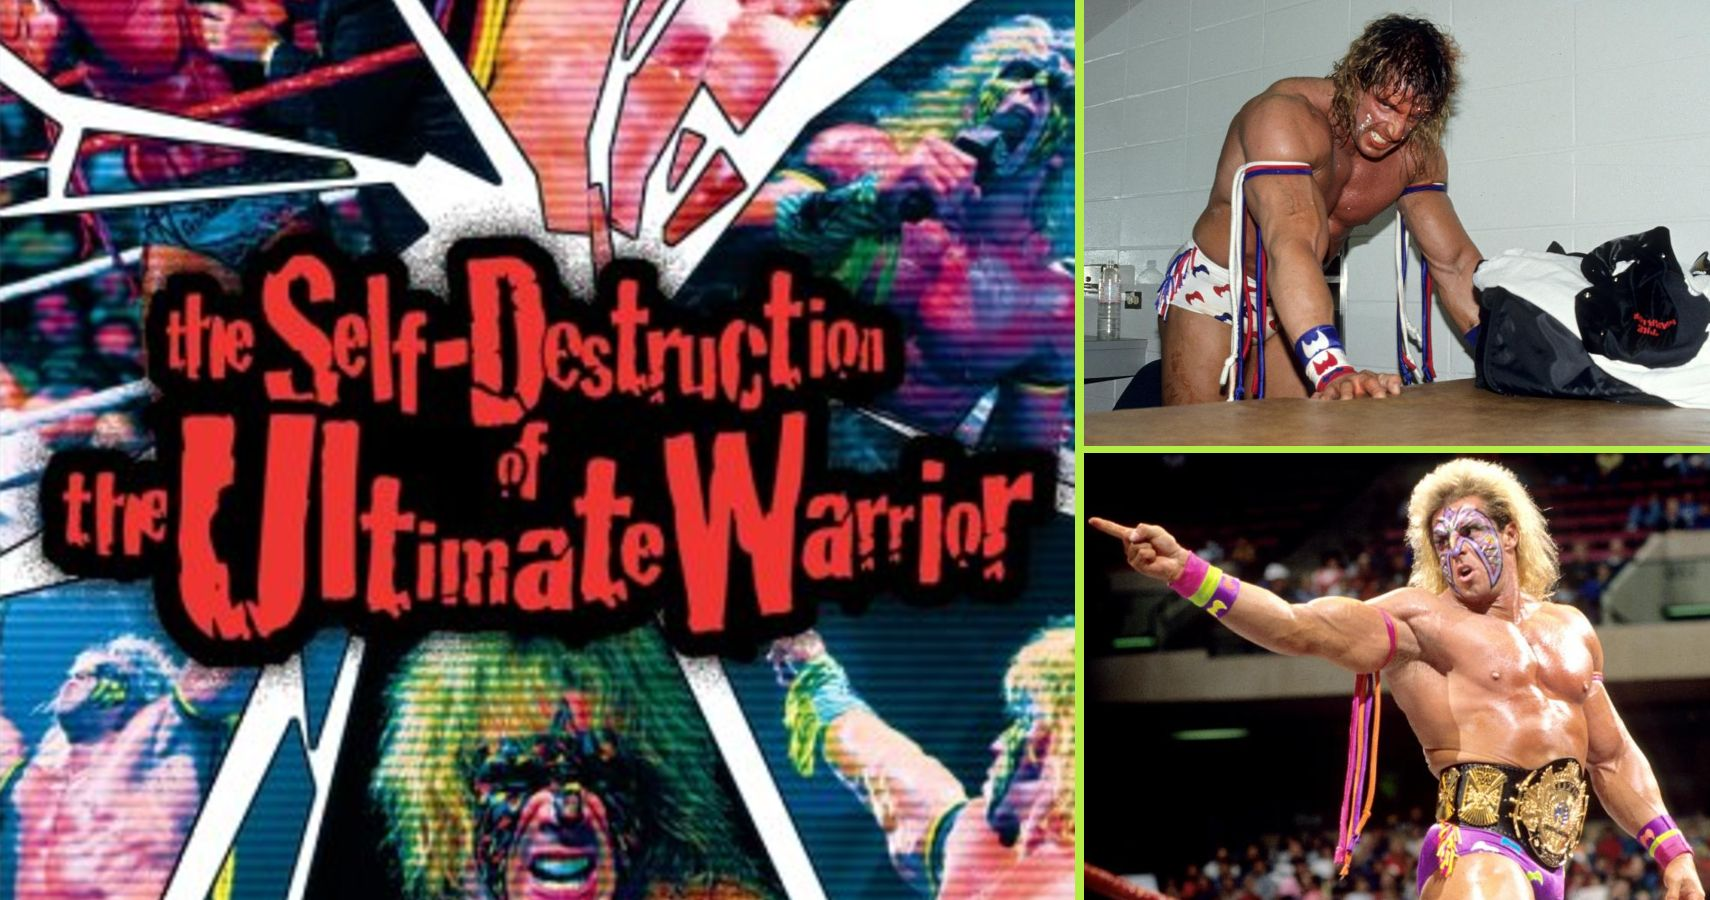 'The Self Destruction Of The Ultimate Warrior' Remains The Weirdest Documentary WWE Ever Made